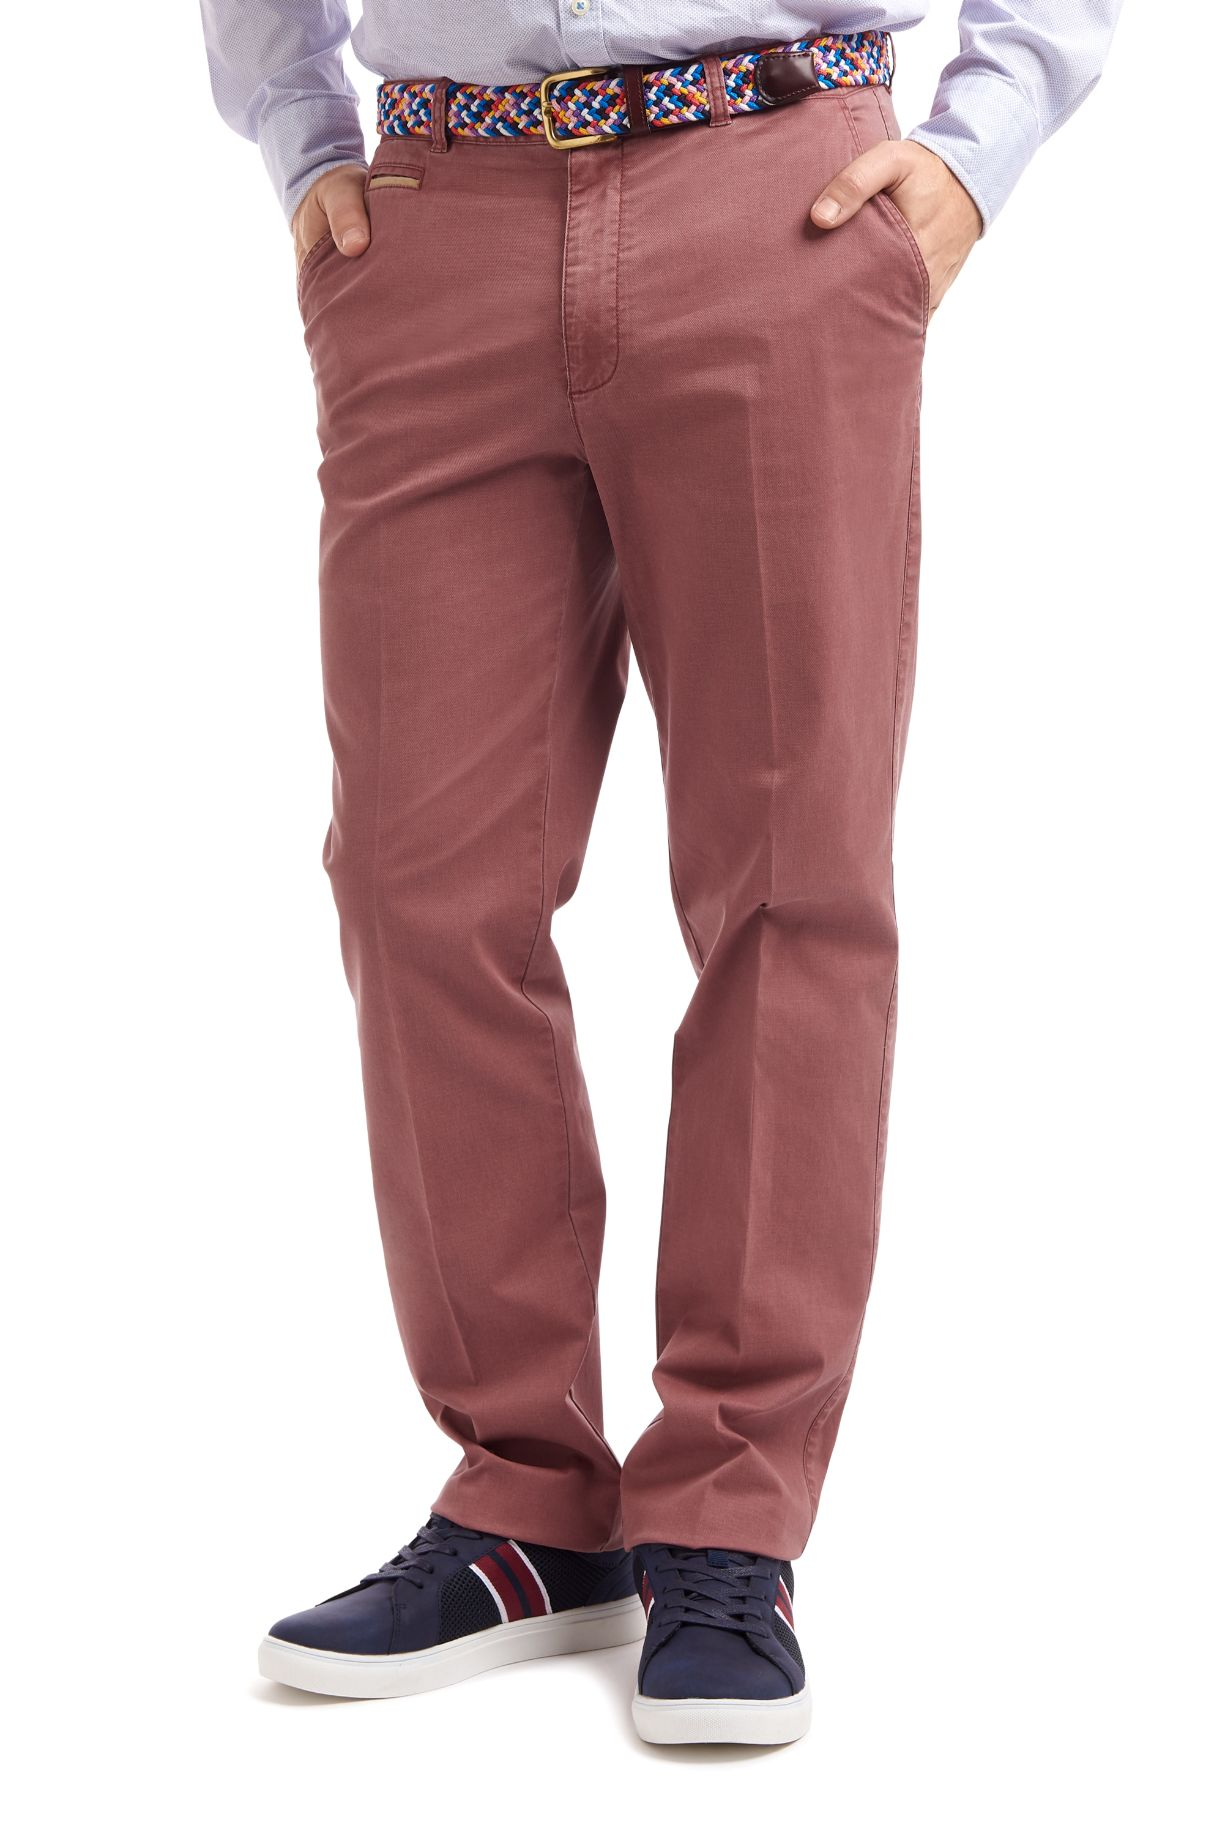 Gurteen Tidworth trousers in coral